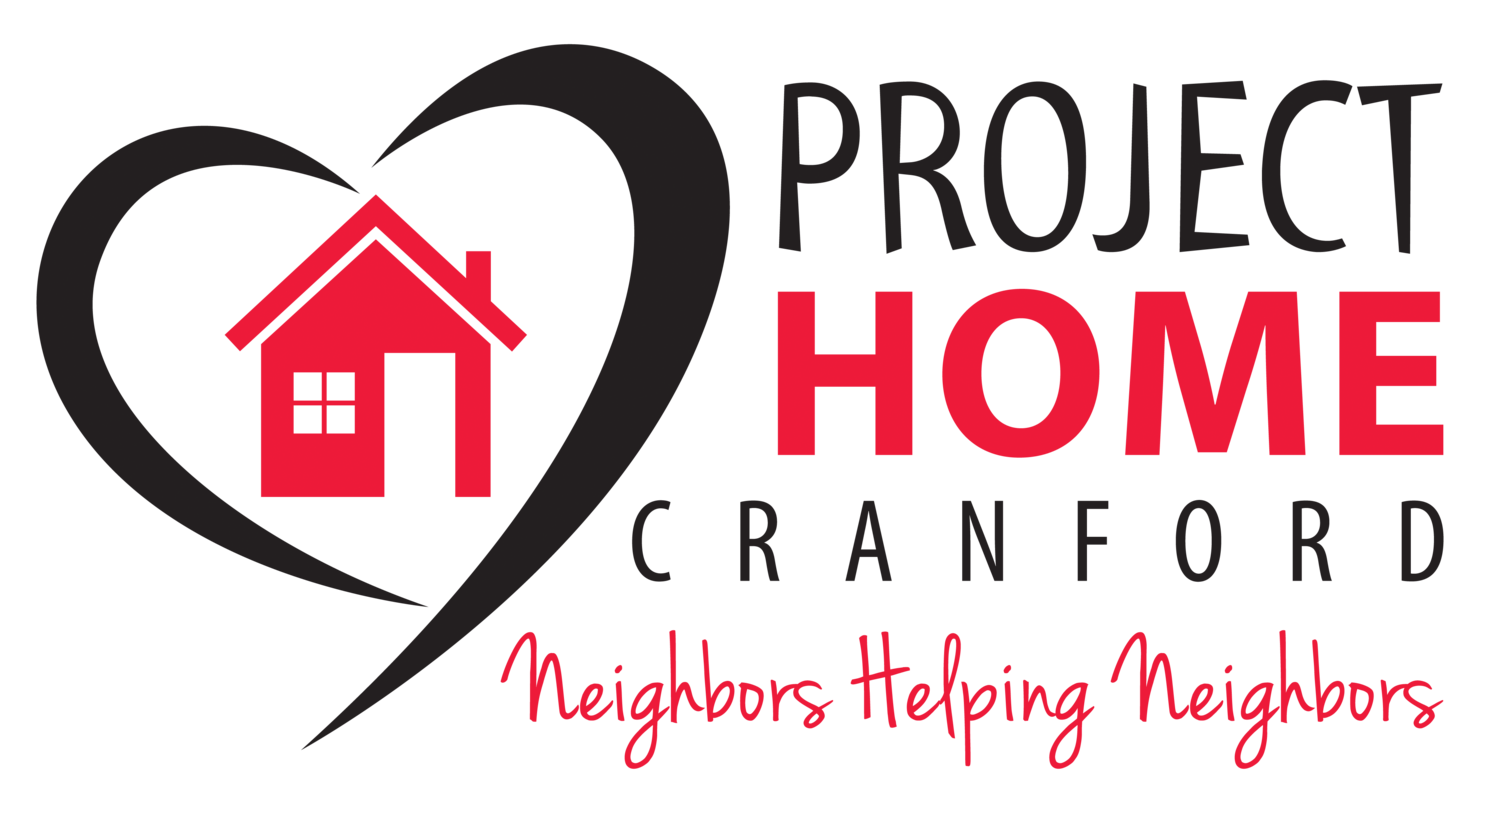 Project Home of Cranford